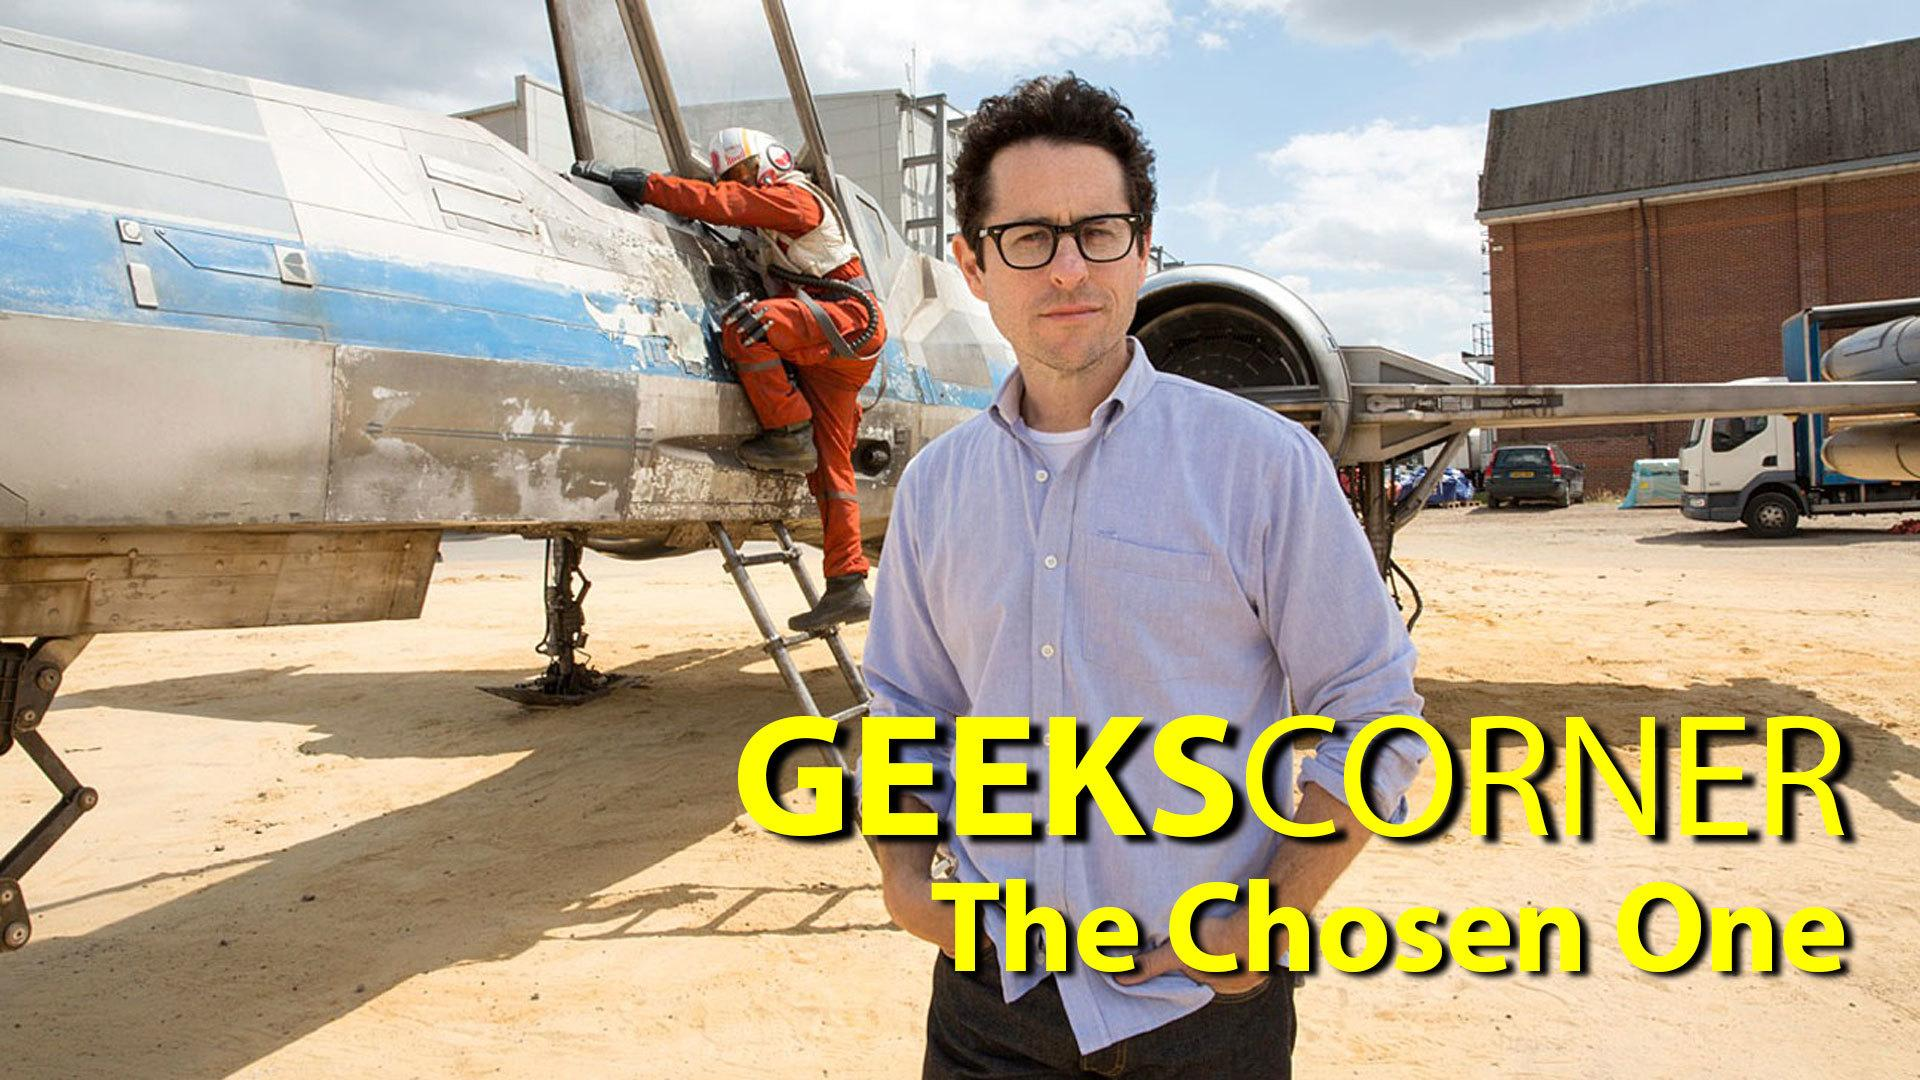 The Chosen One - GEEKS CORNER - Episode 650